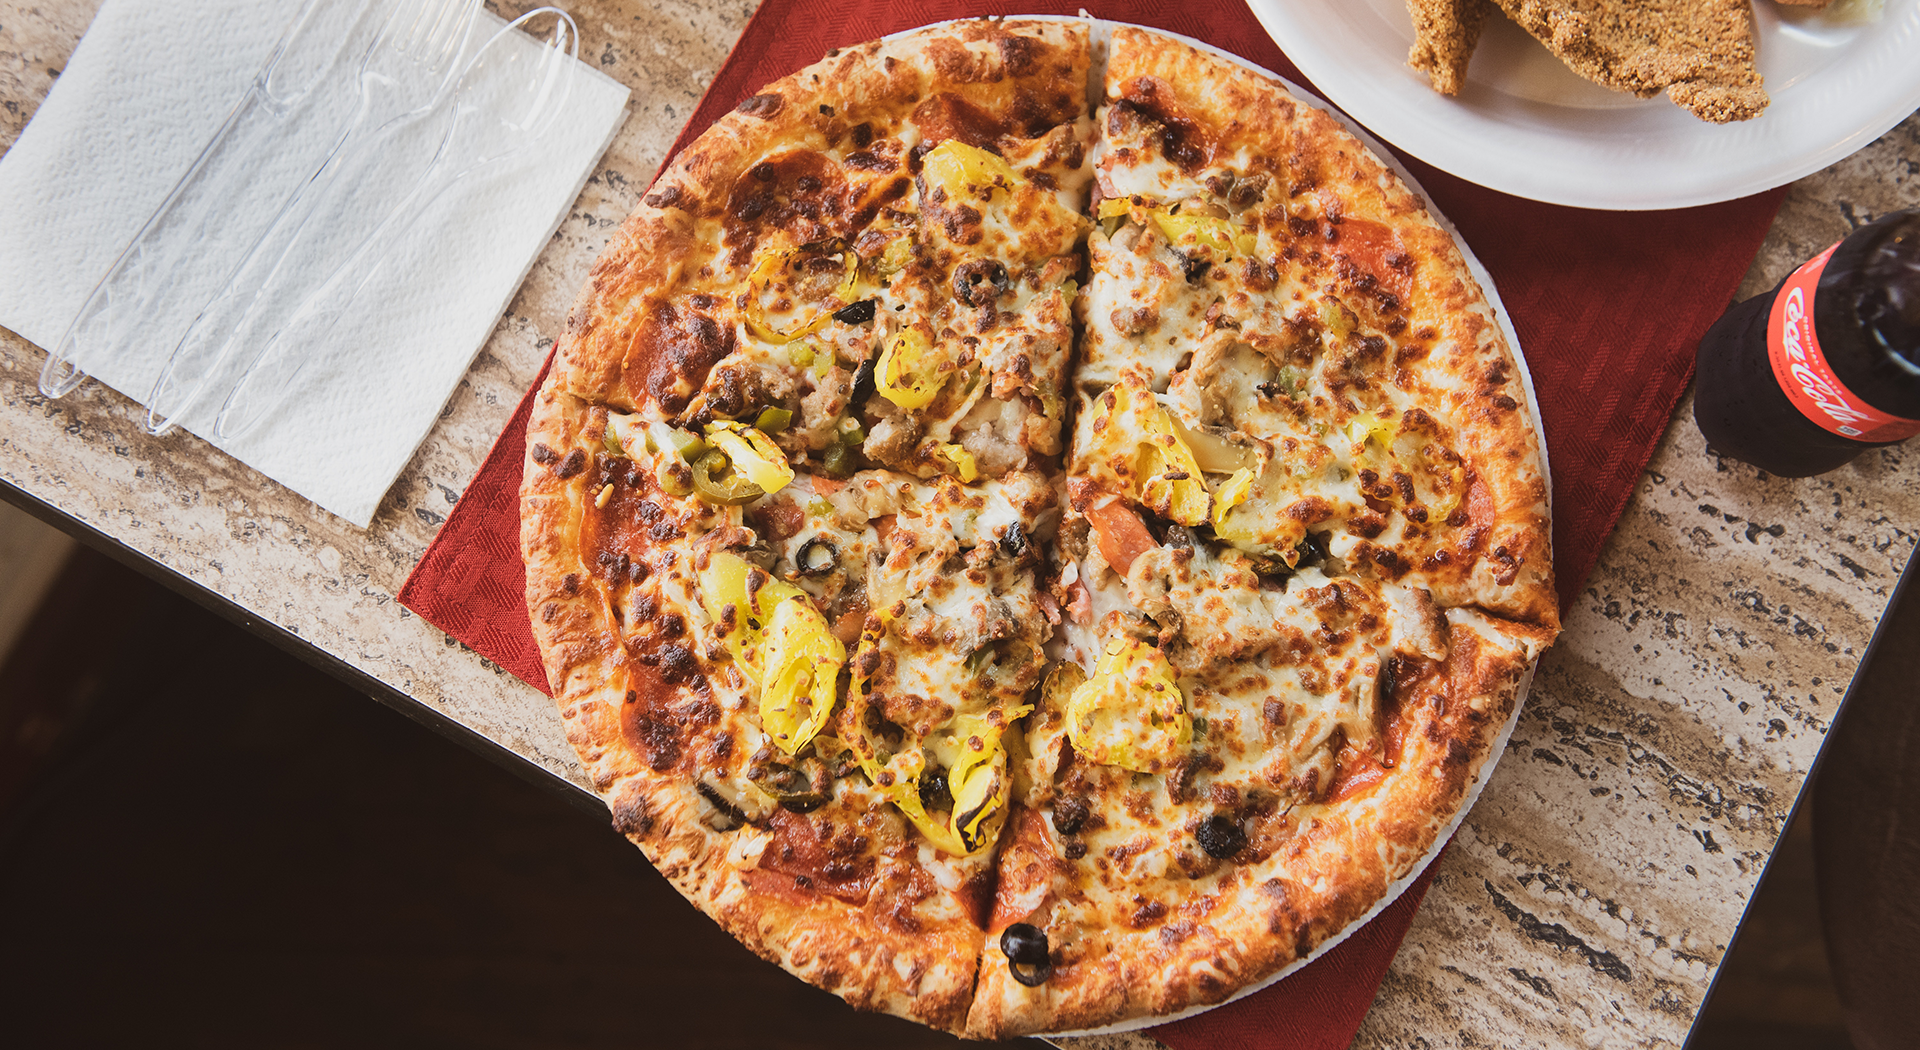 Brontos Pizza and Ribs - Delivery Pizza - Goedemoet Durbanville Cape Town